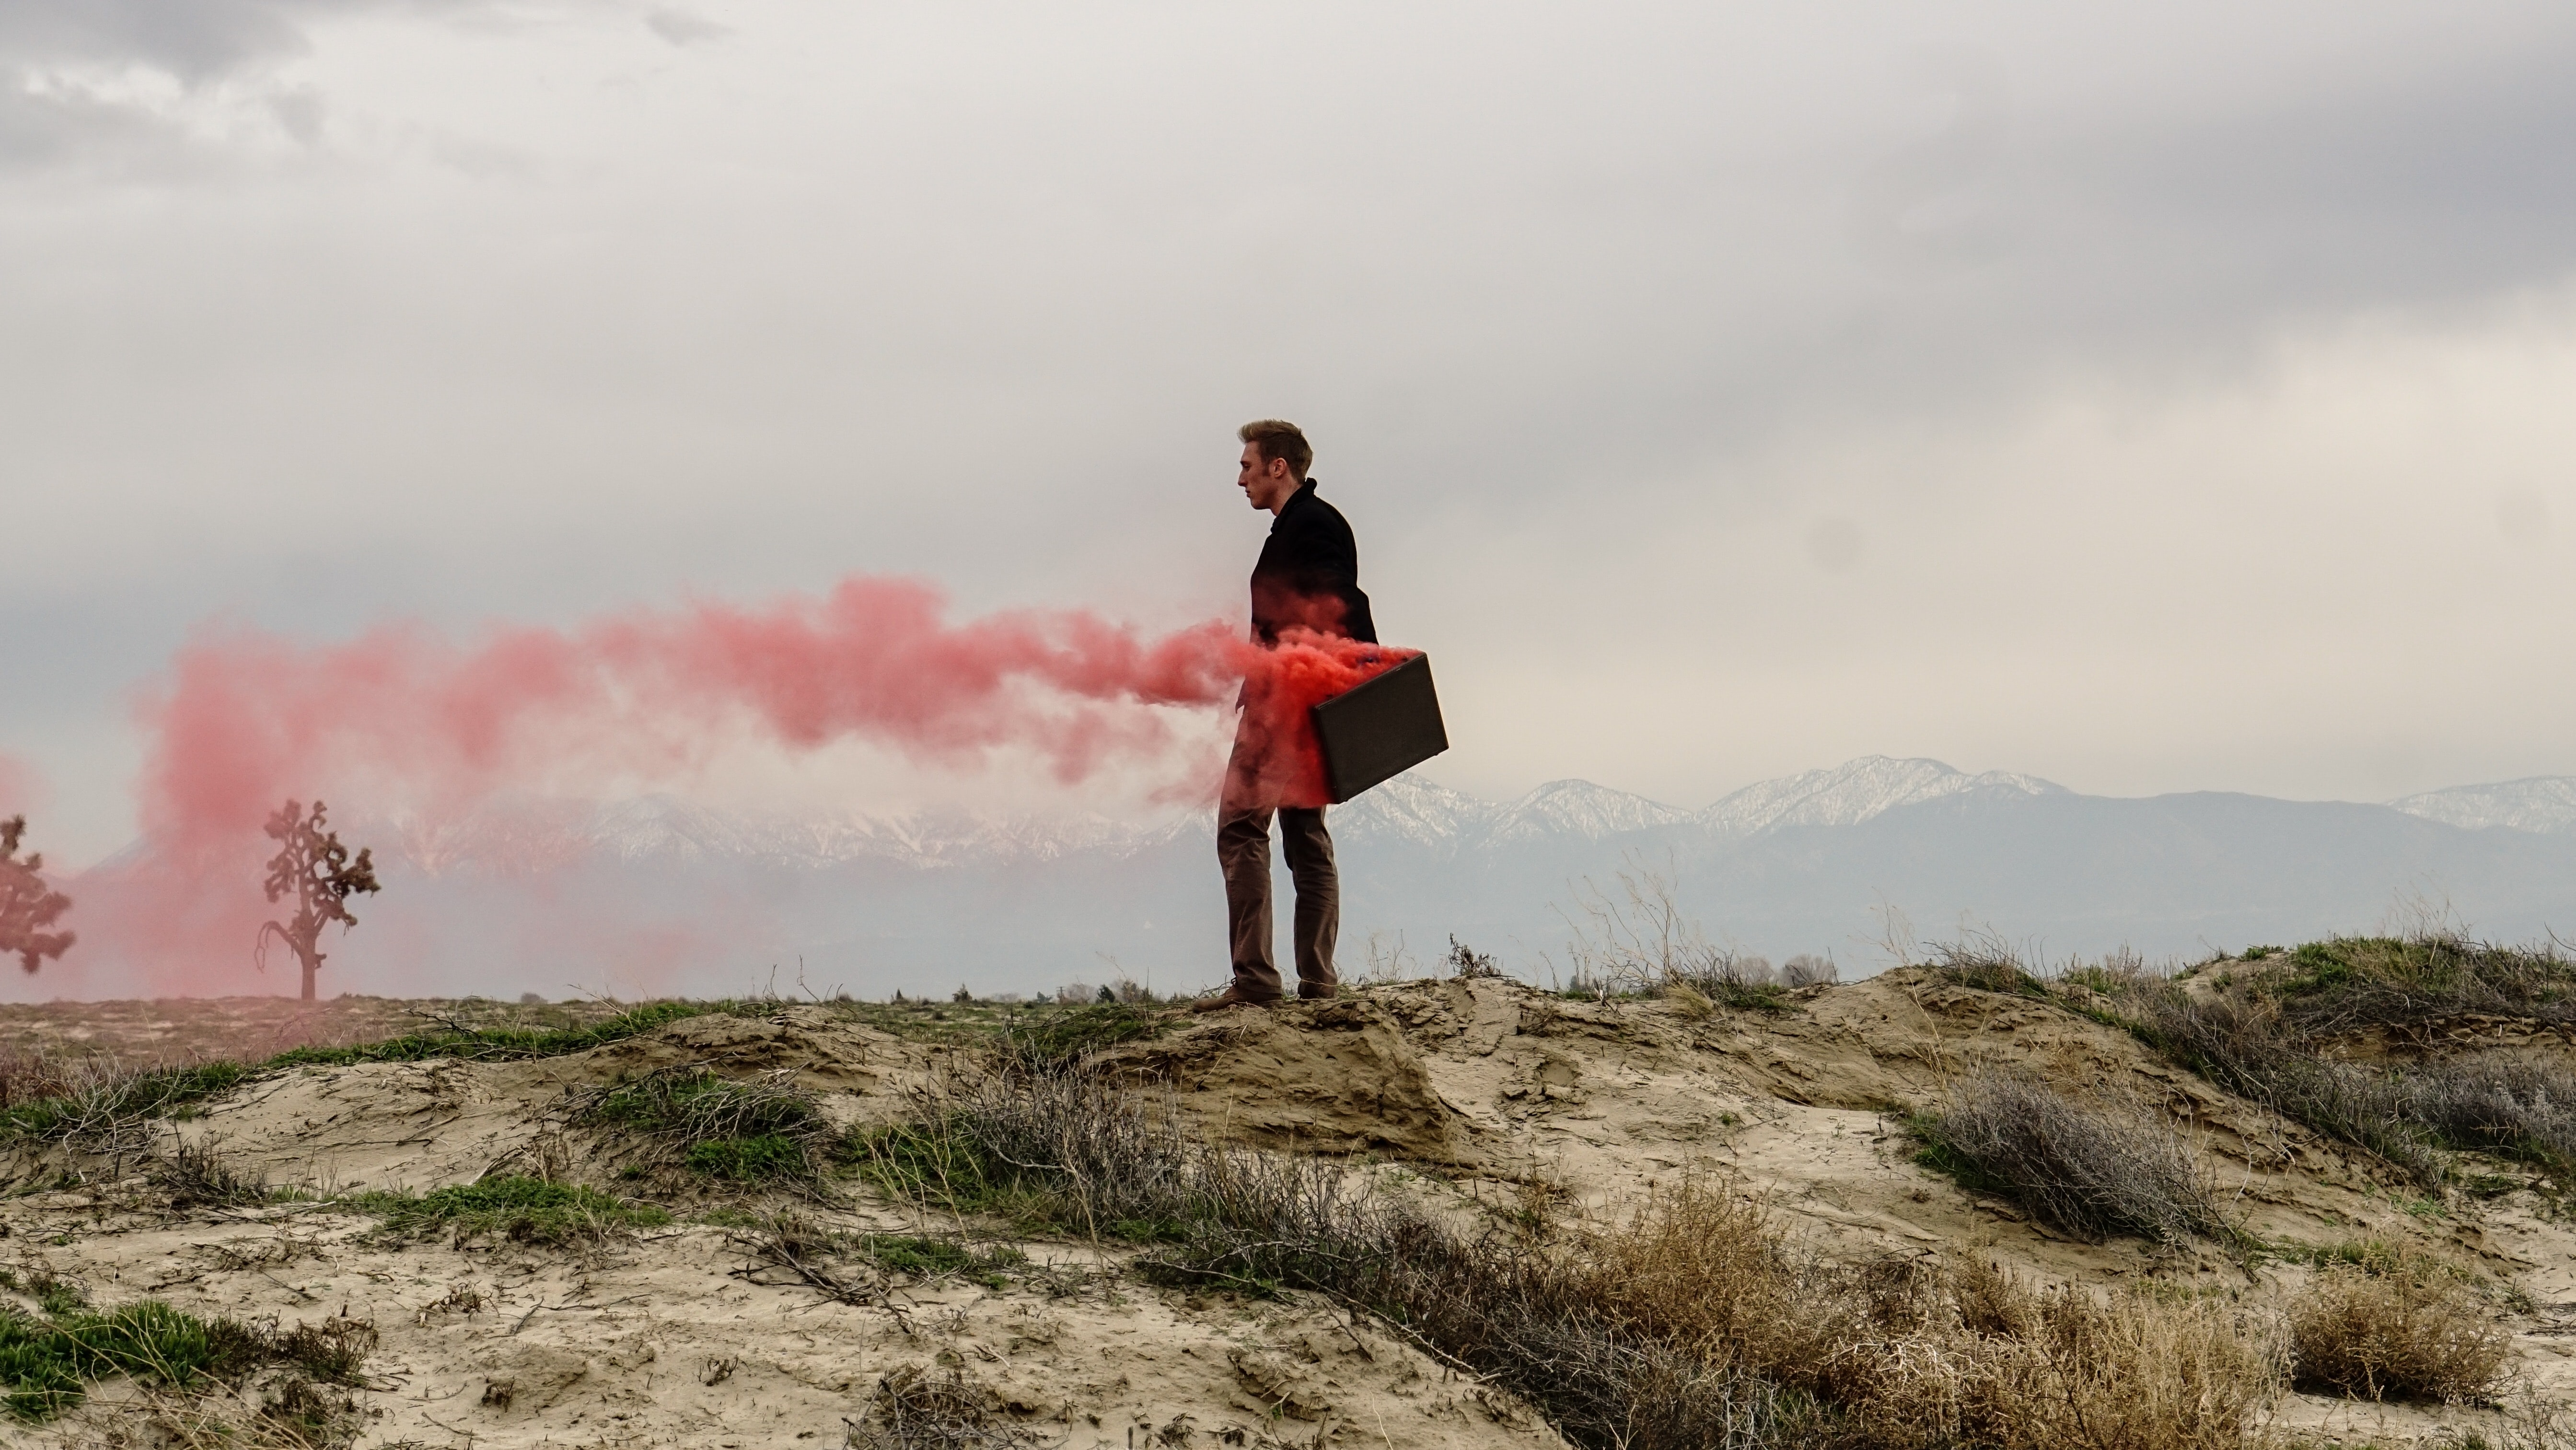 Red smoke coming out of a man's briefcase.